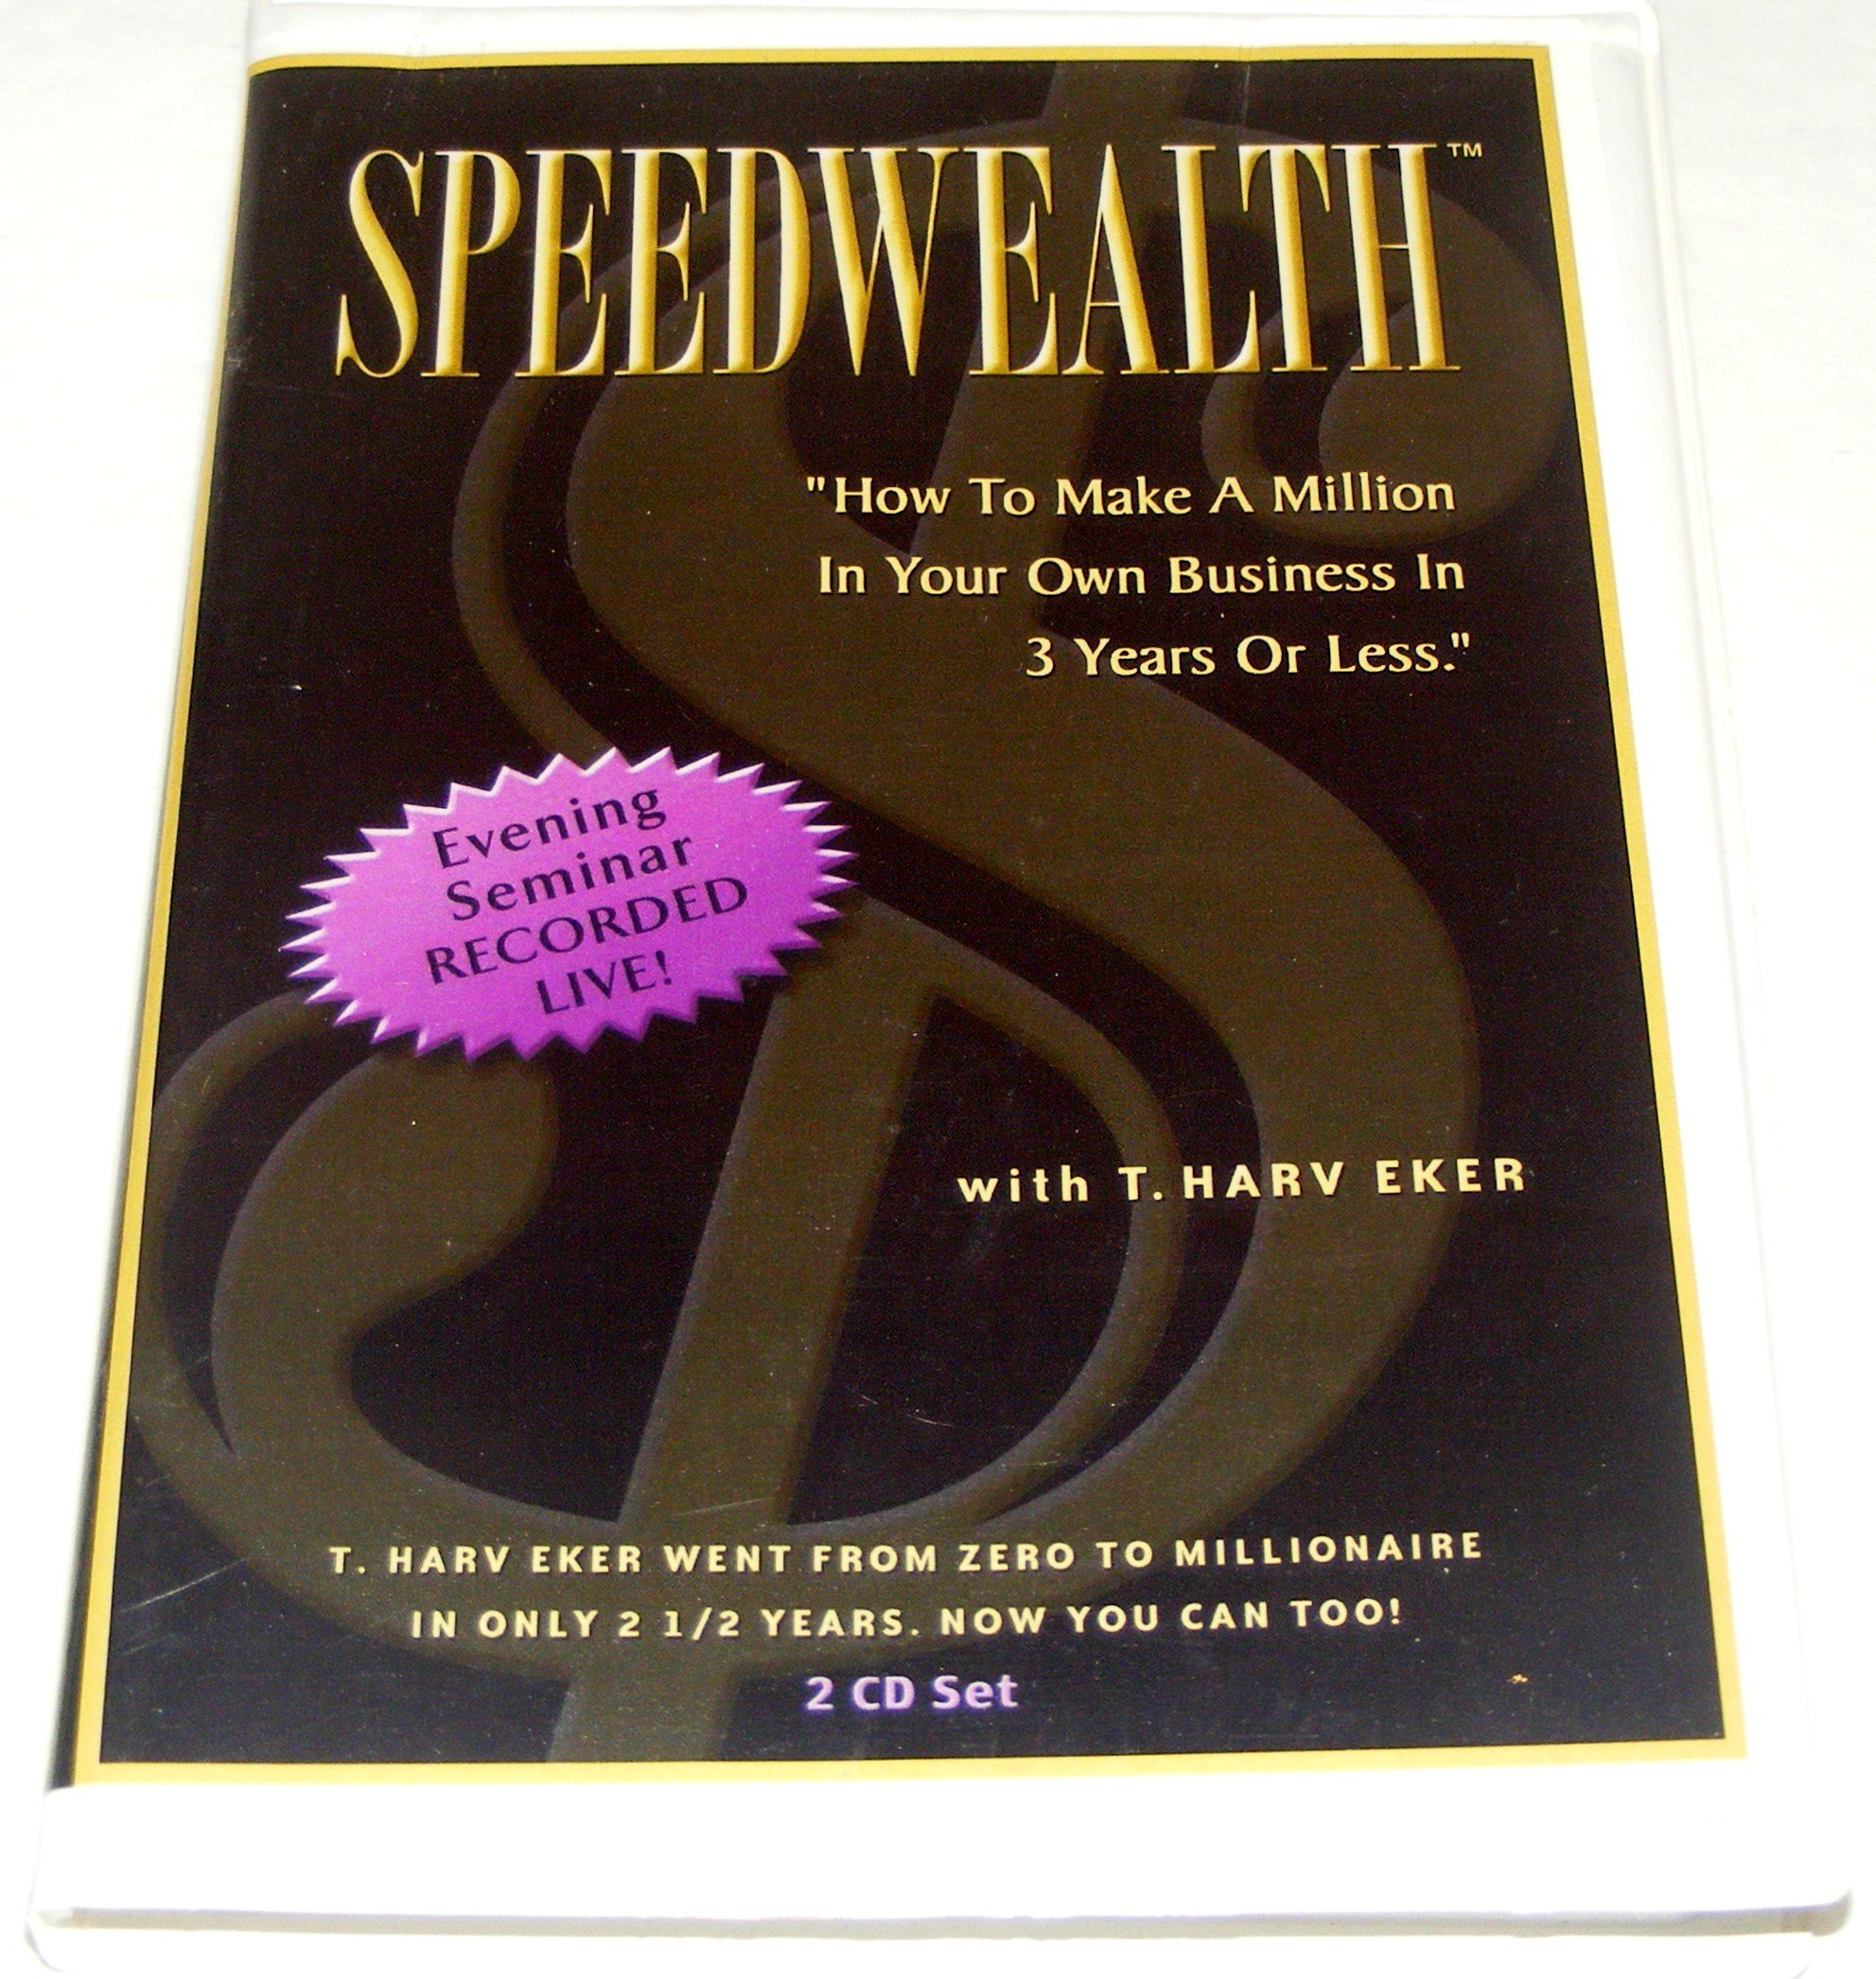 Speedwealth how to make a million in your own business in 3 speedwealth how to make a million in your own business in 3 years of less t harv eker amazon books fandeluxe Choice Image